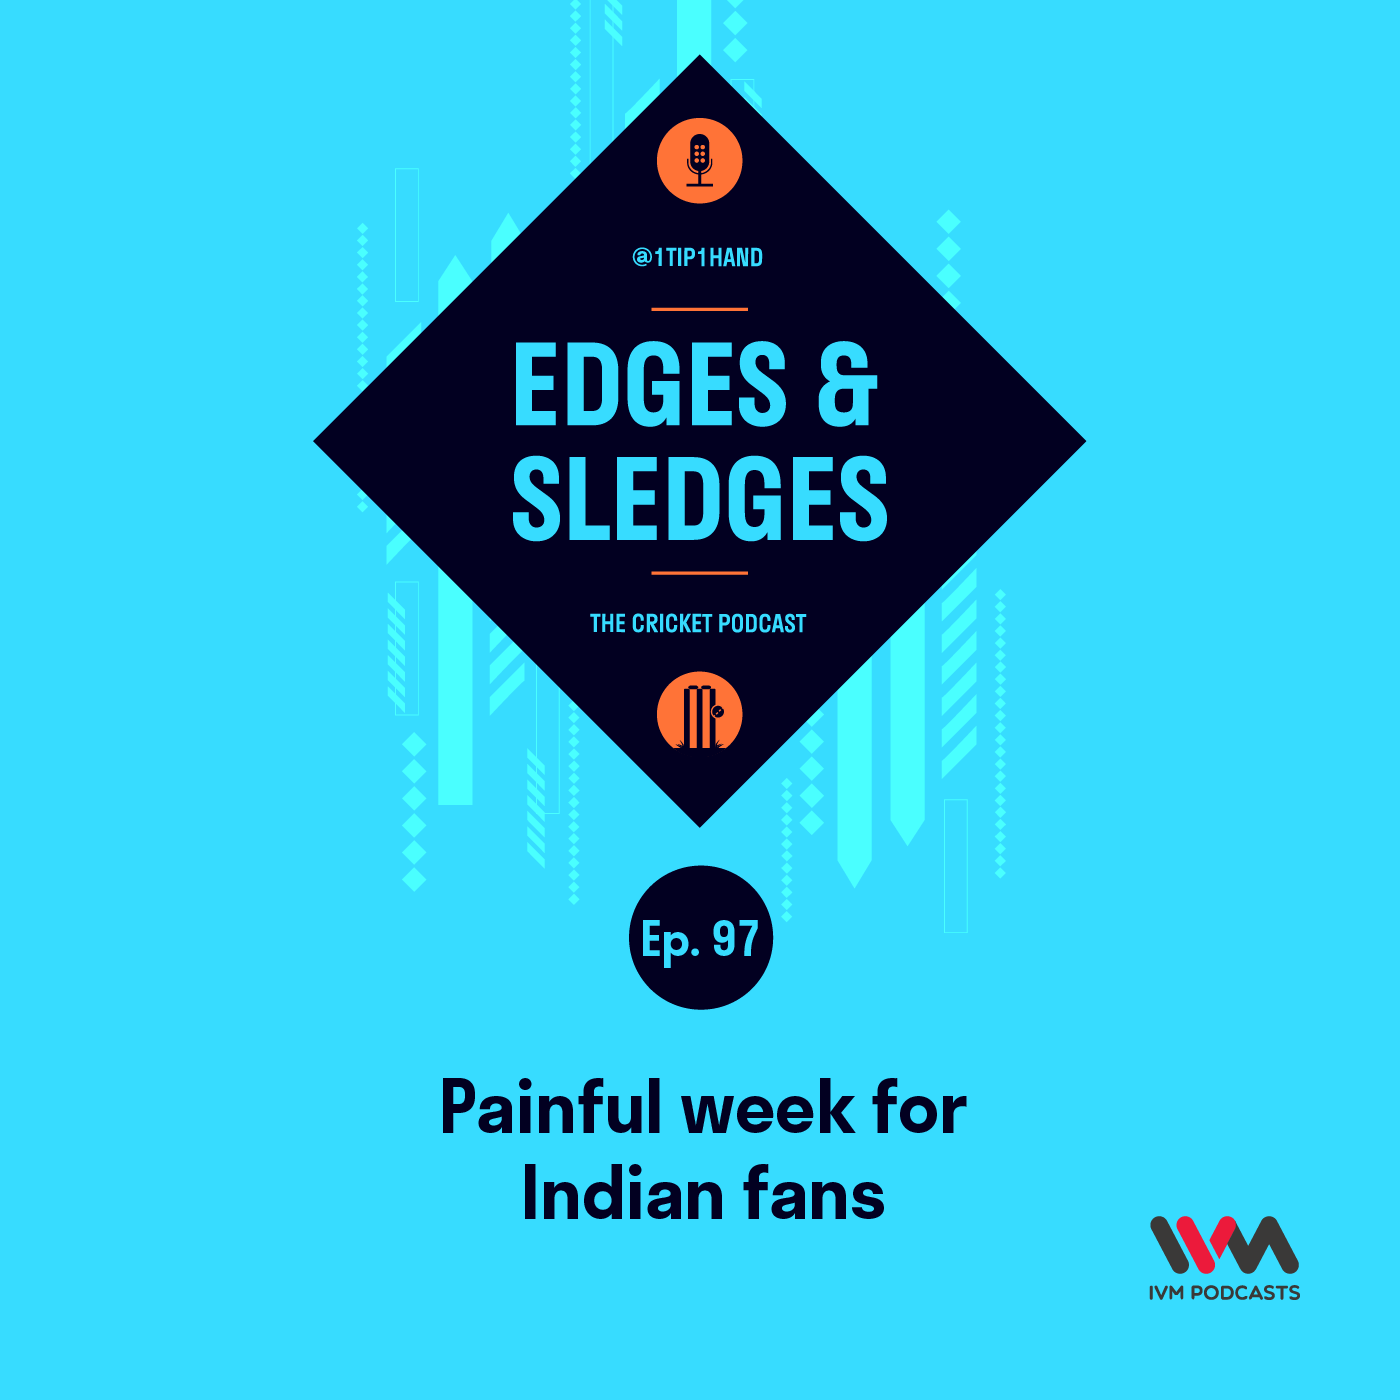 Ep. 97: Painful week for Indian fans